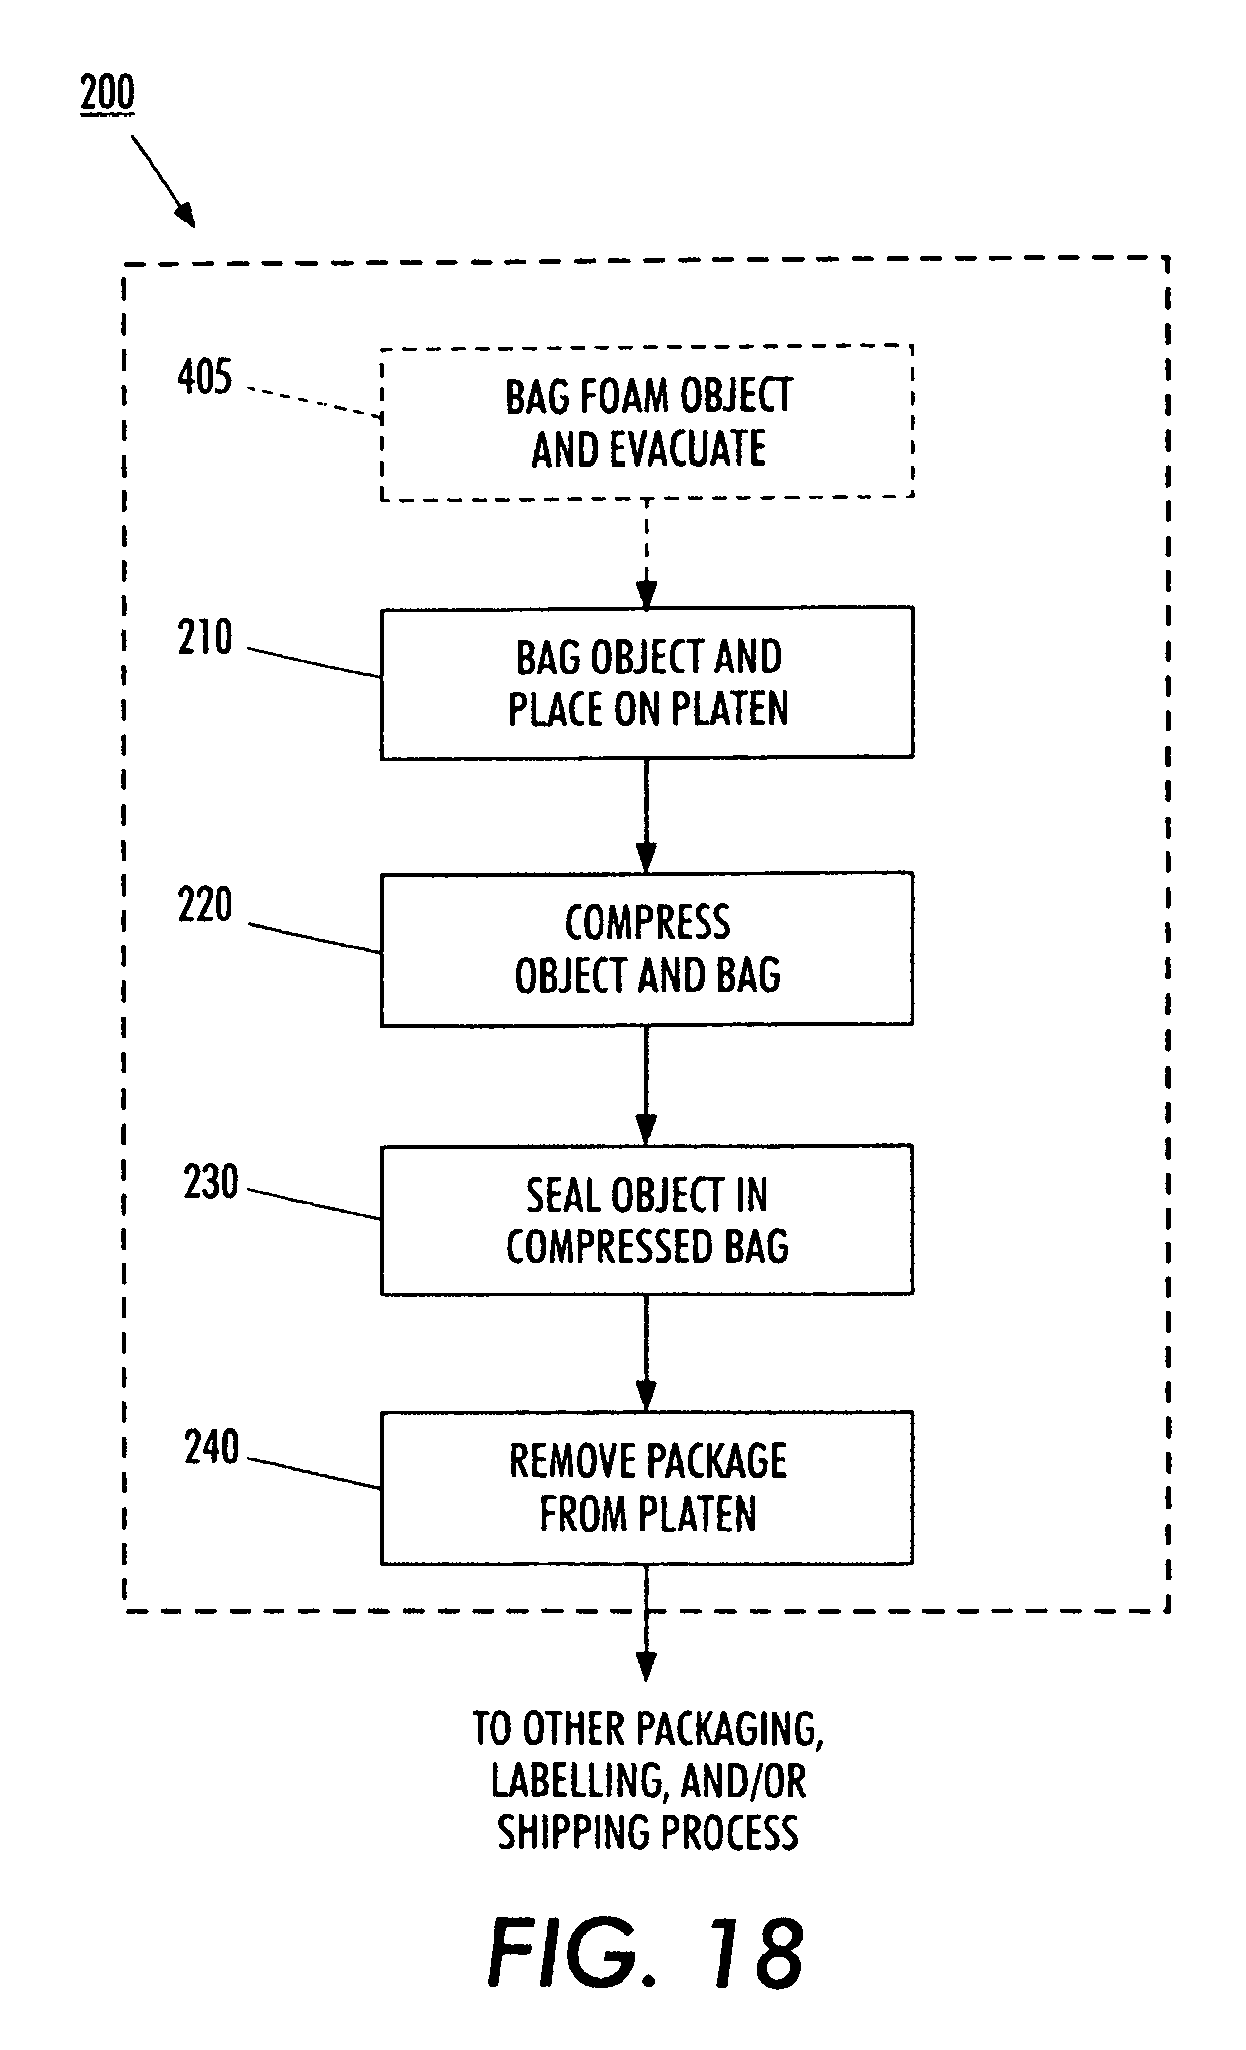 Sealable Mattress Storage Bag Patent US7870960 - Disaster pack - Google Patents